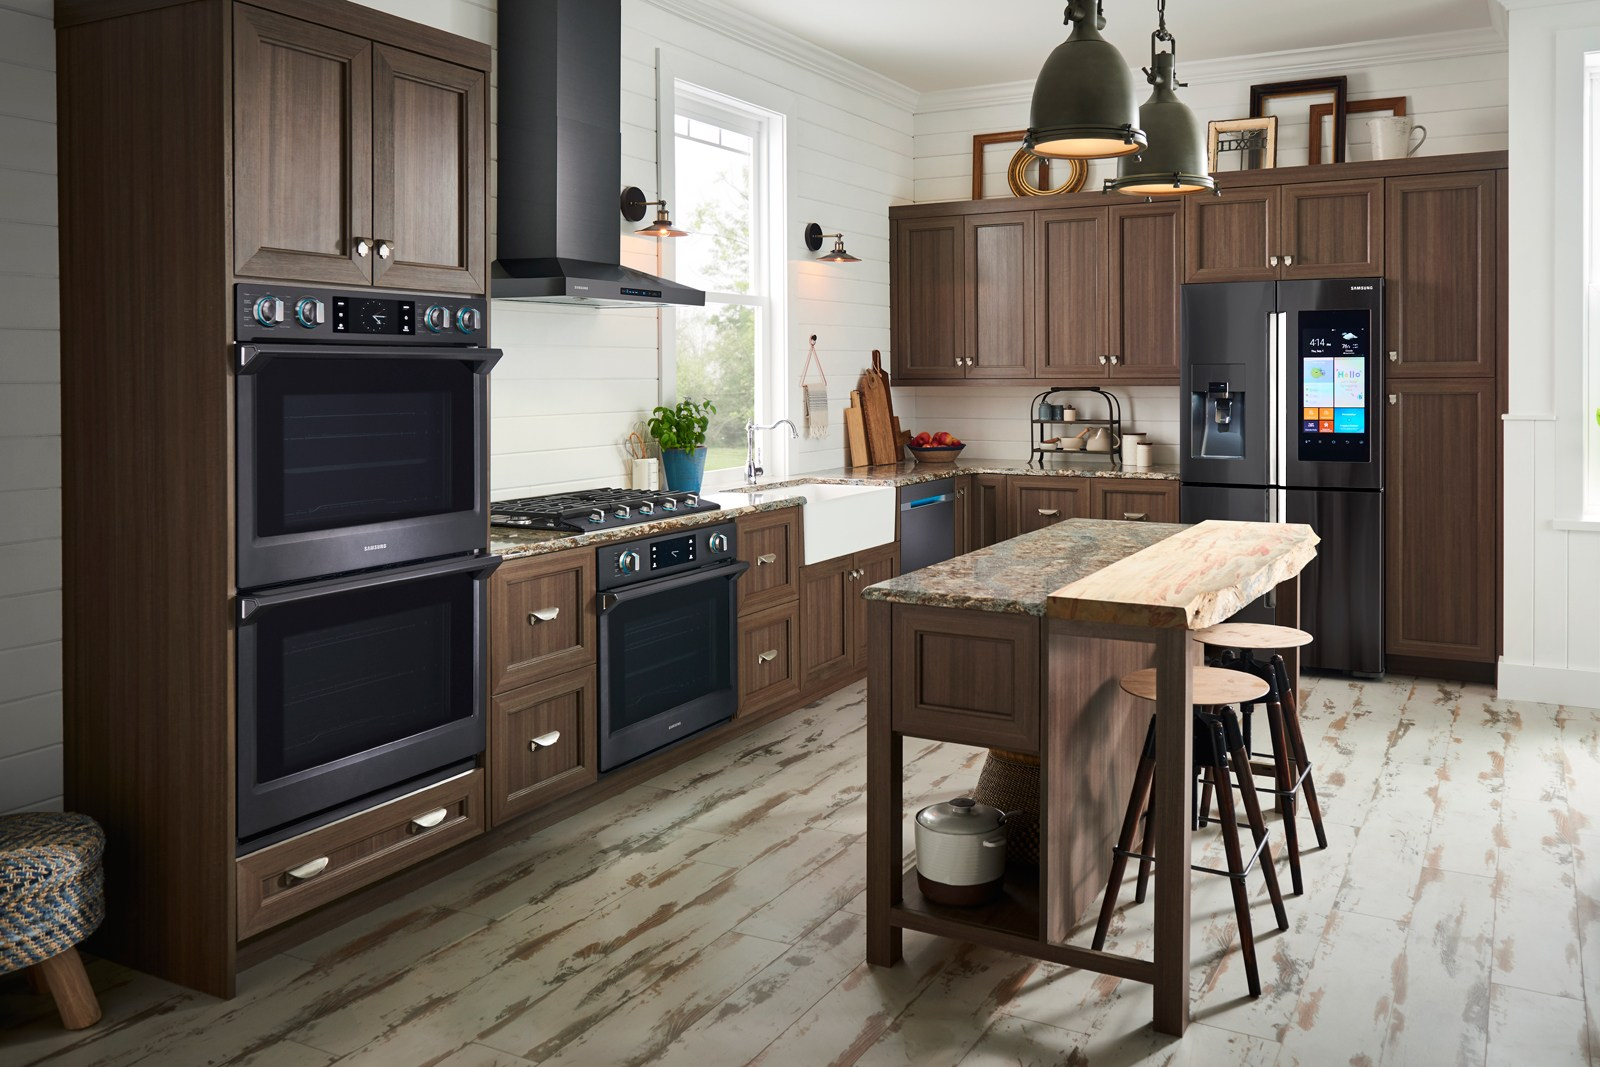 Kitchen Appliances On Credit Samsungs Built In Smart Appliances Blend In With Your Decor